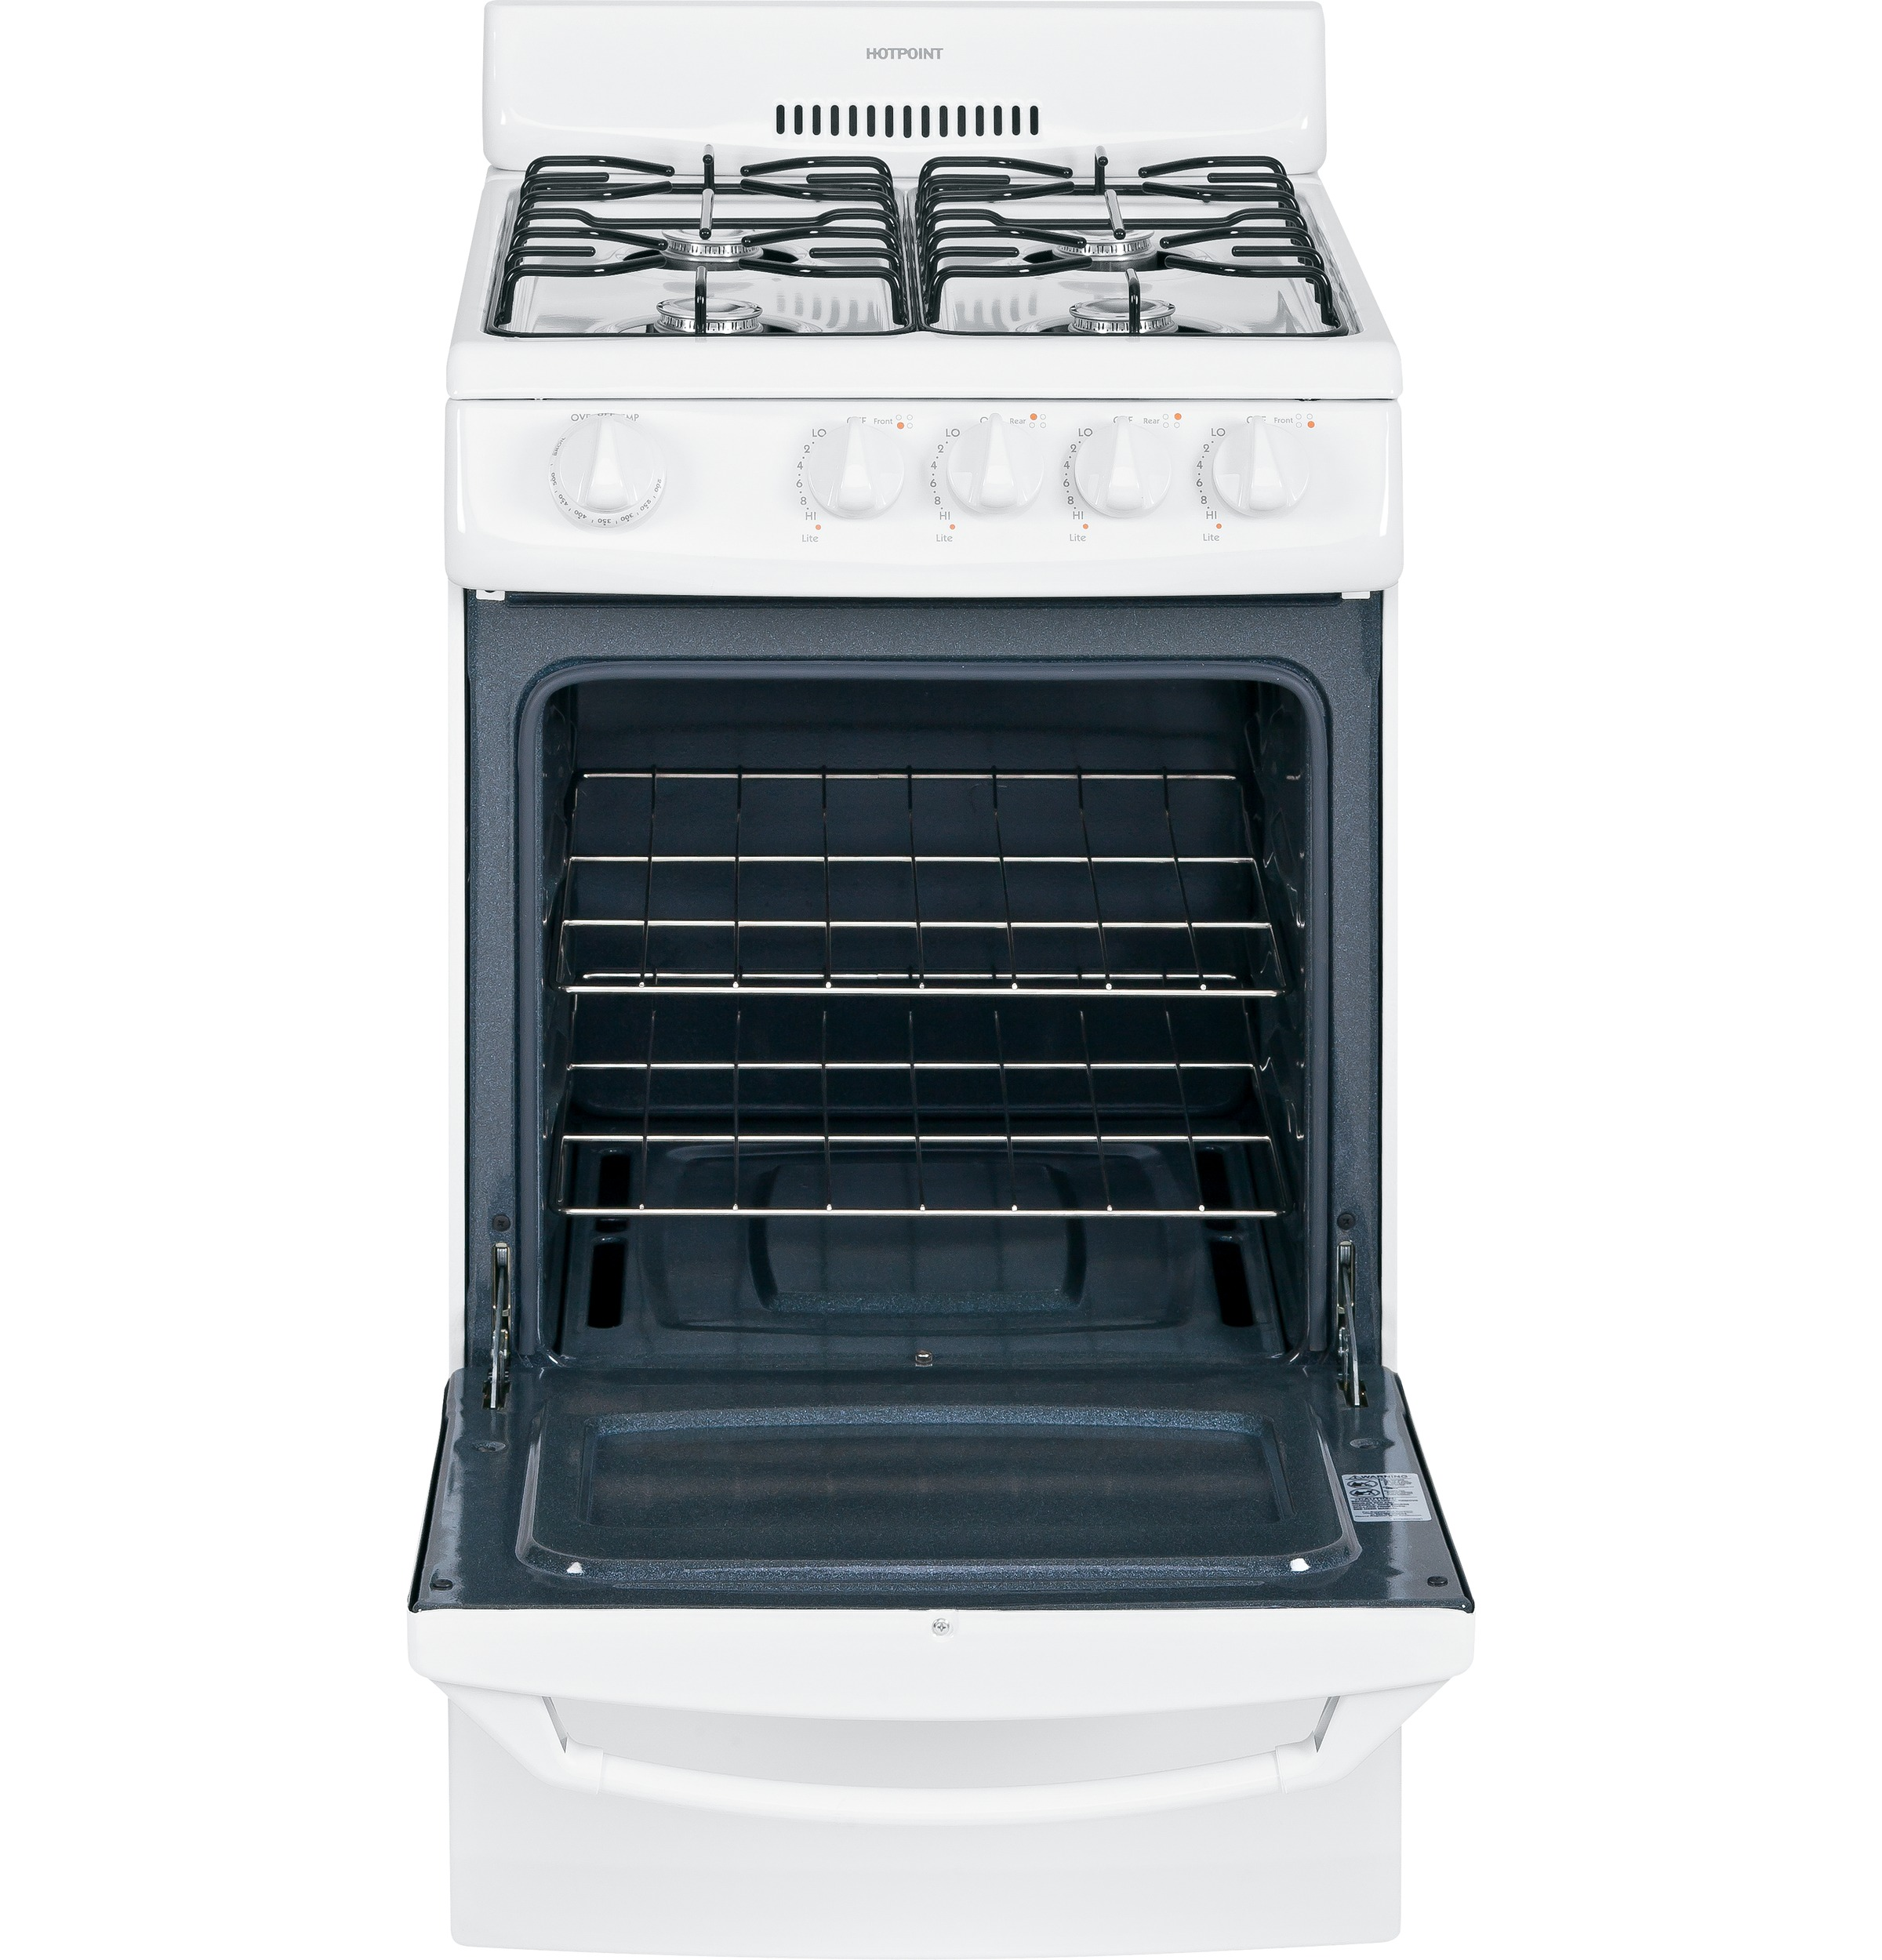 hotpoint oven 317b6641p001 manual